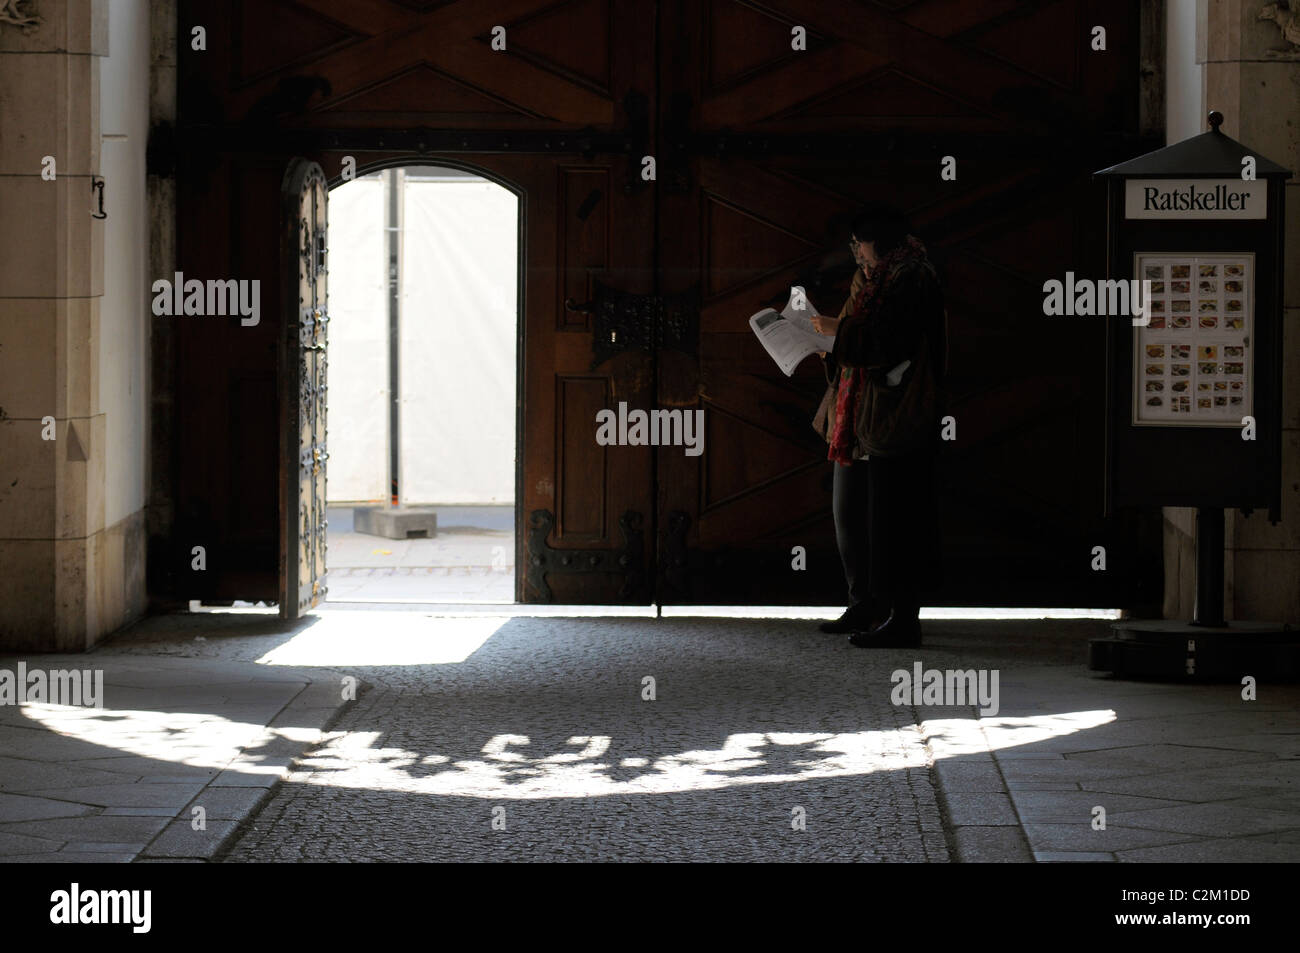 Door to town hall with shadow pattern, Munich, Germany - Stock Image